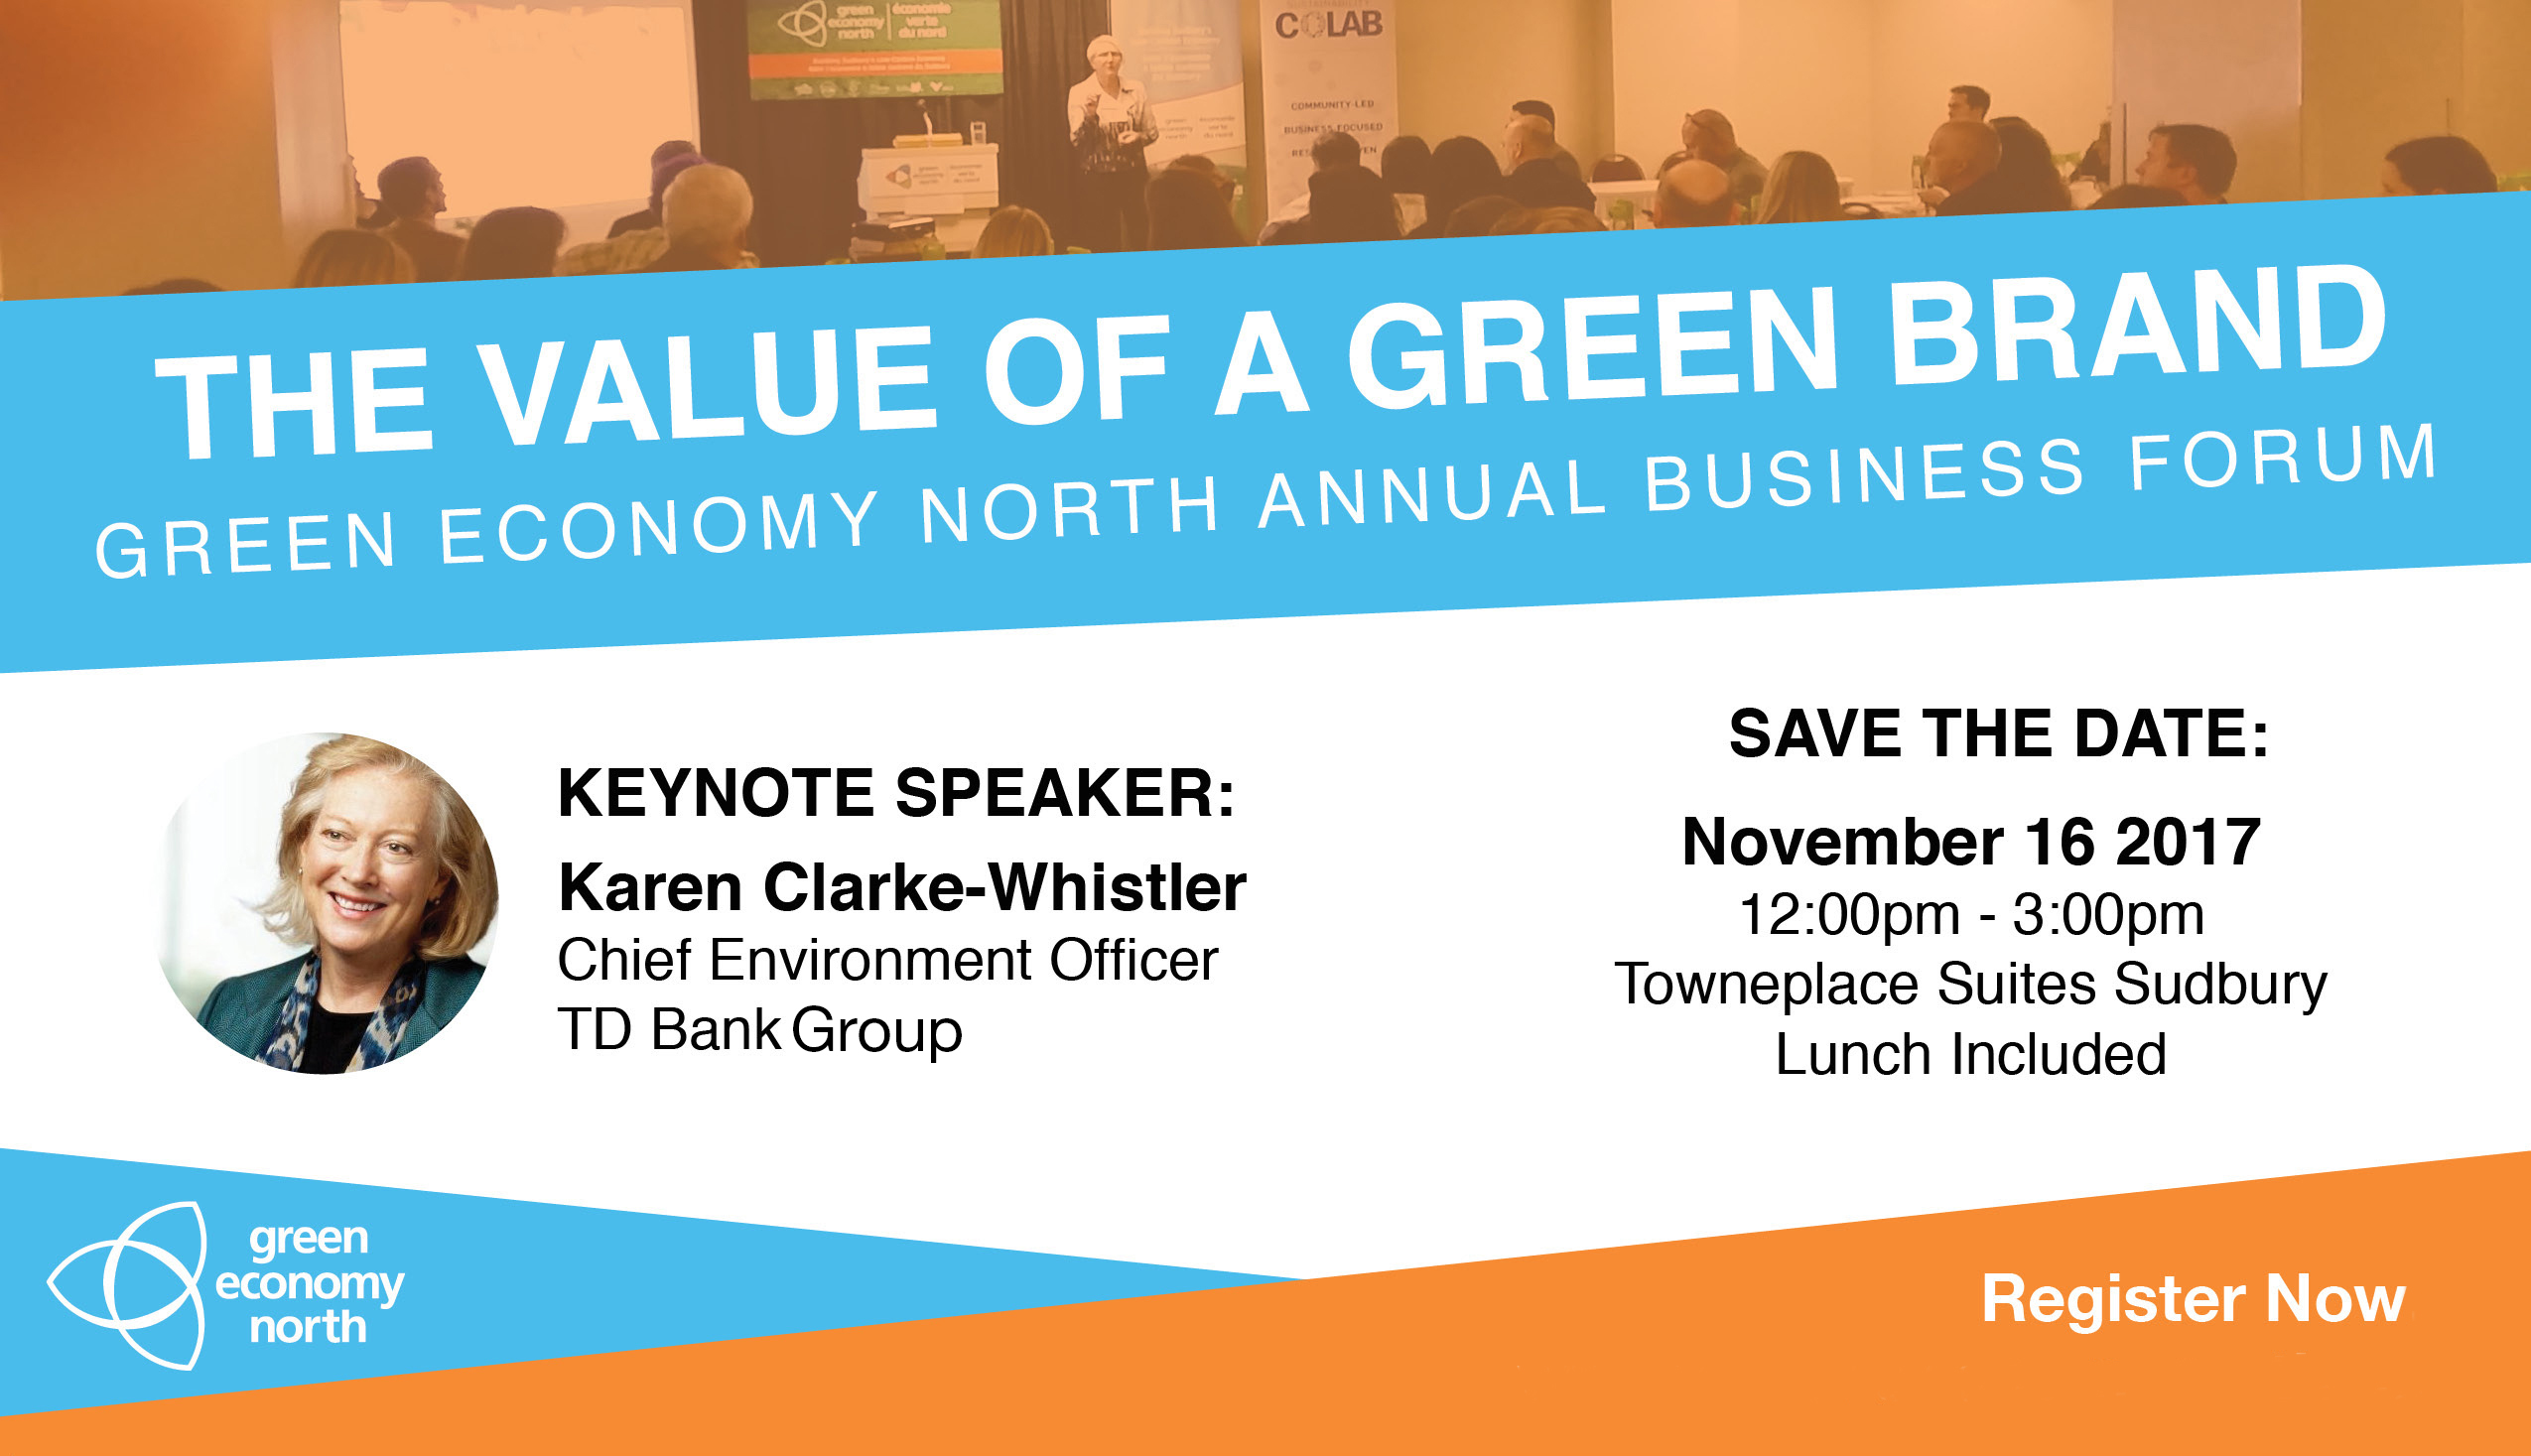 Save-the-date_NOV16-the_value_of_a_green_brand_Updated_web.jpg